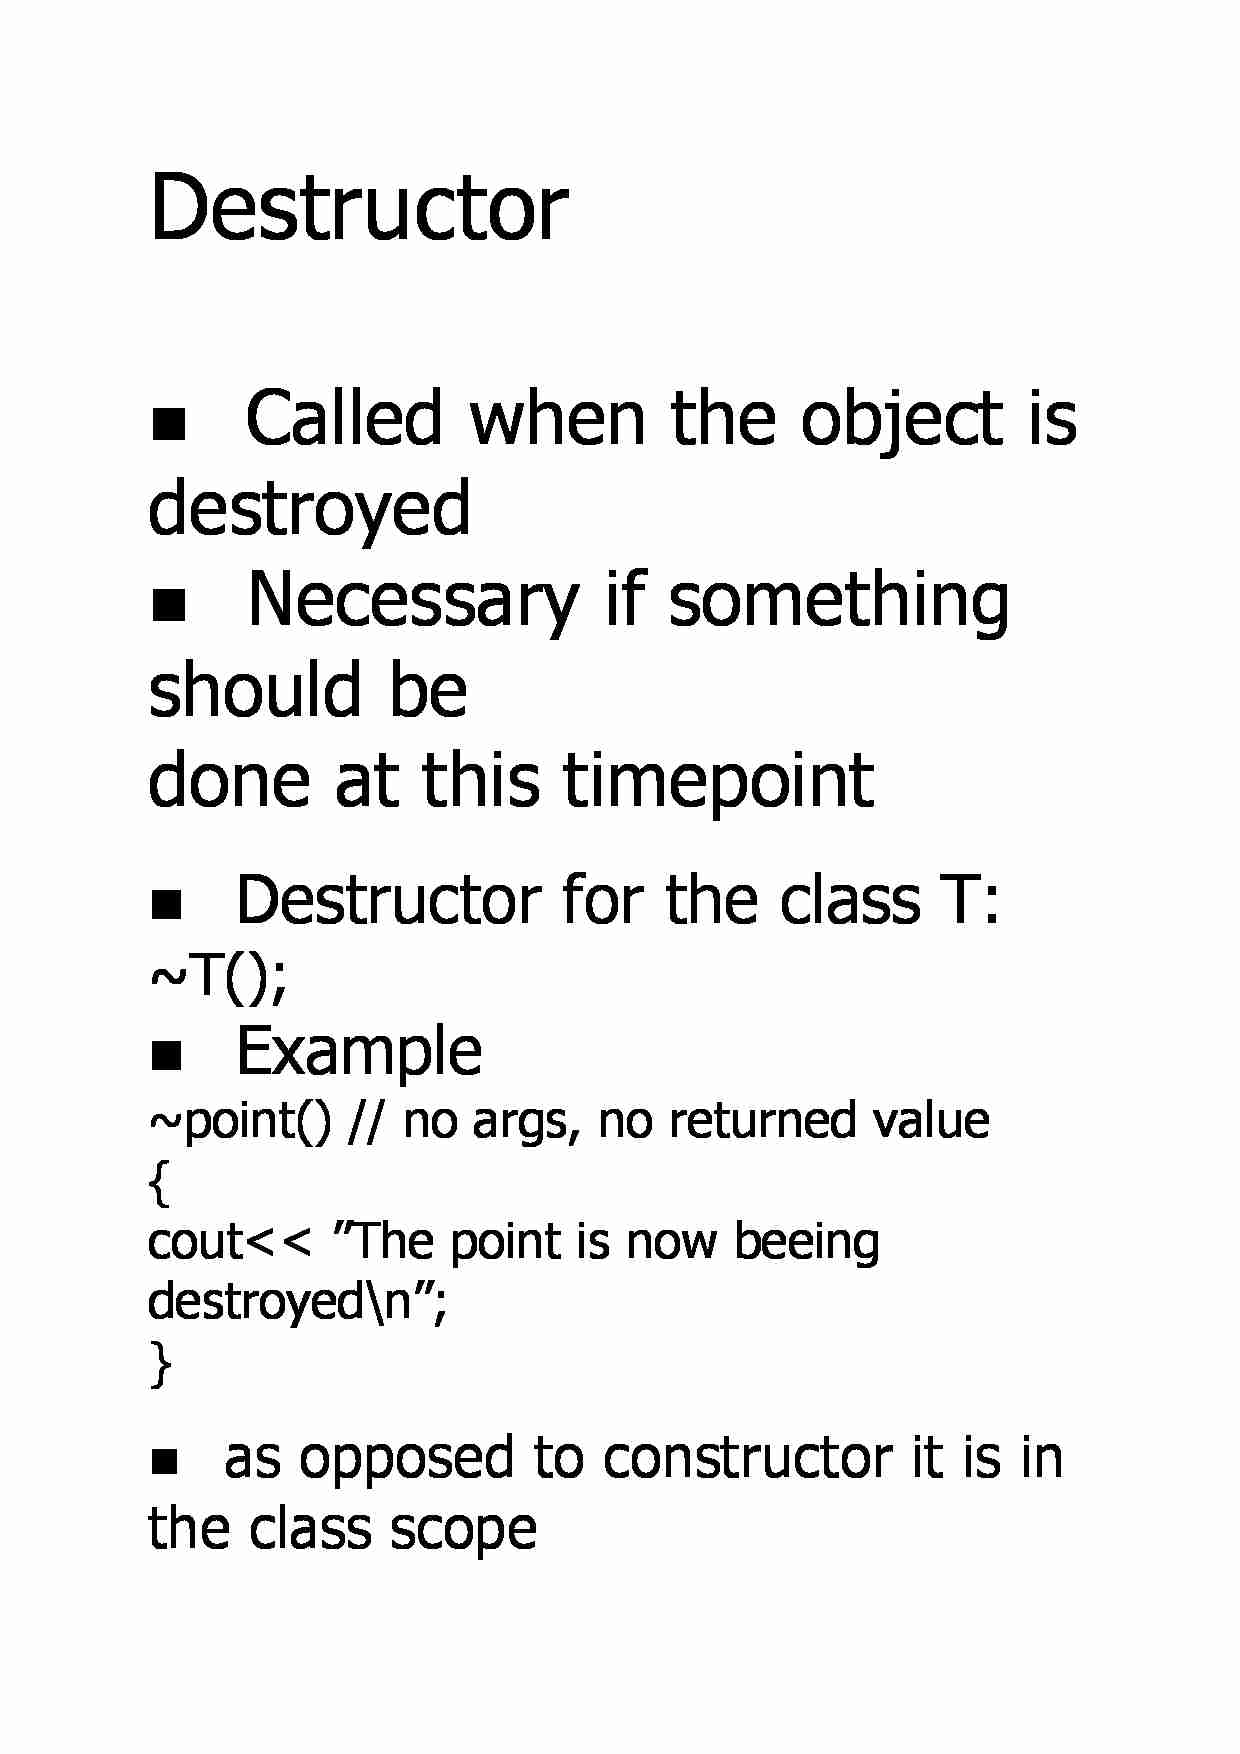 Destructor - Example - strona 1